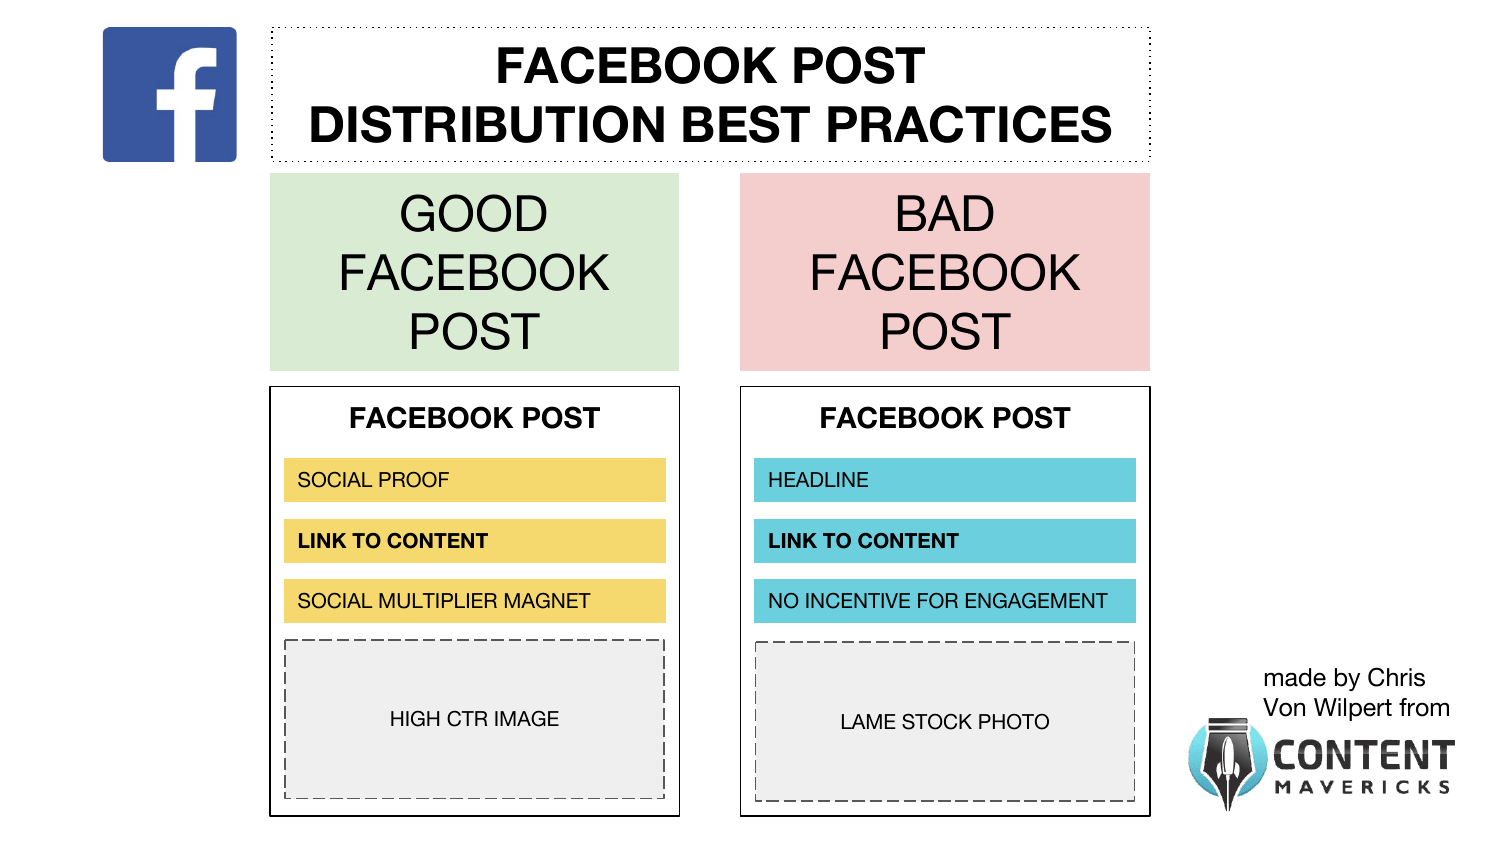 facebook post content distribution best practices image